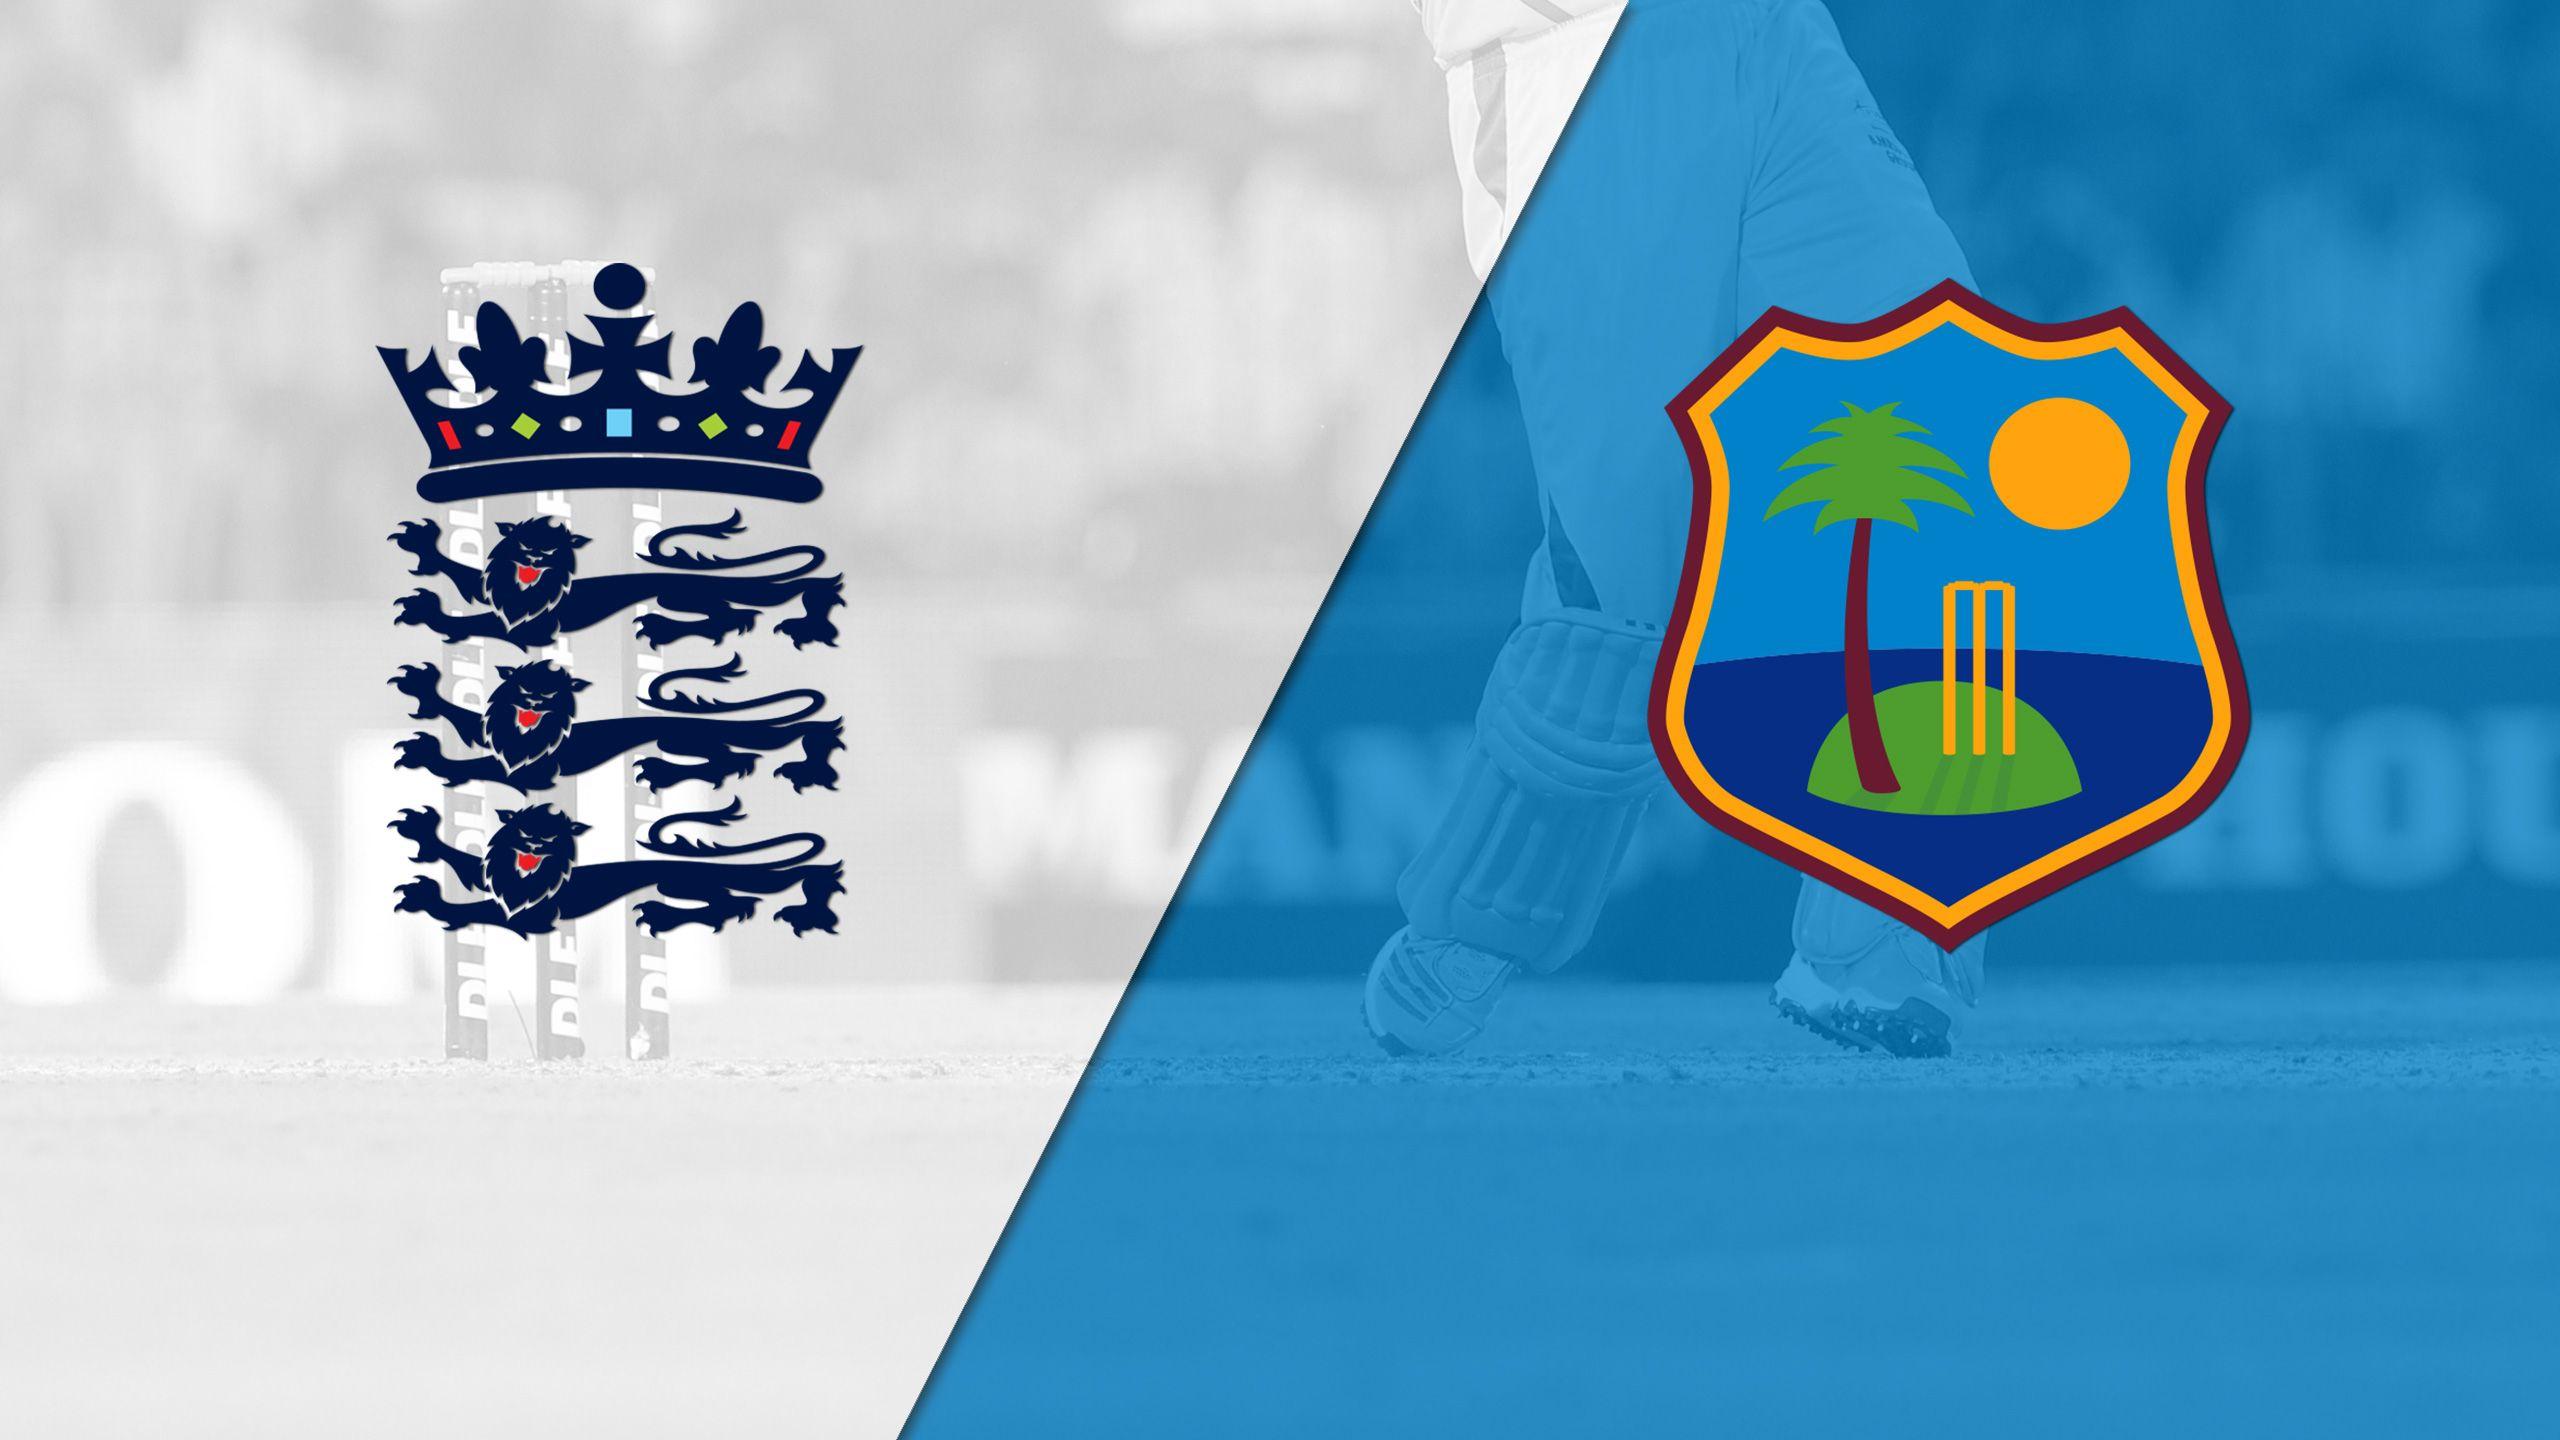 England vs. West Indies (International Cricket)